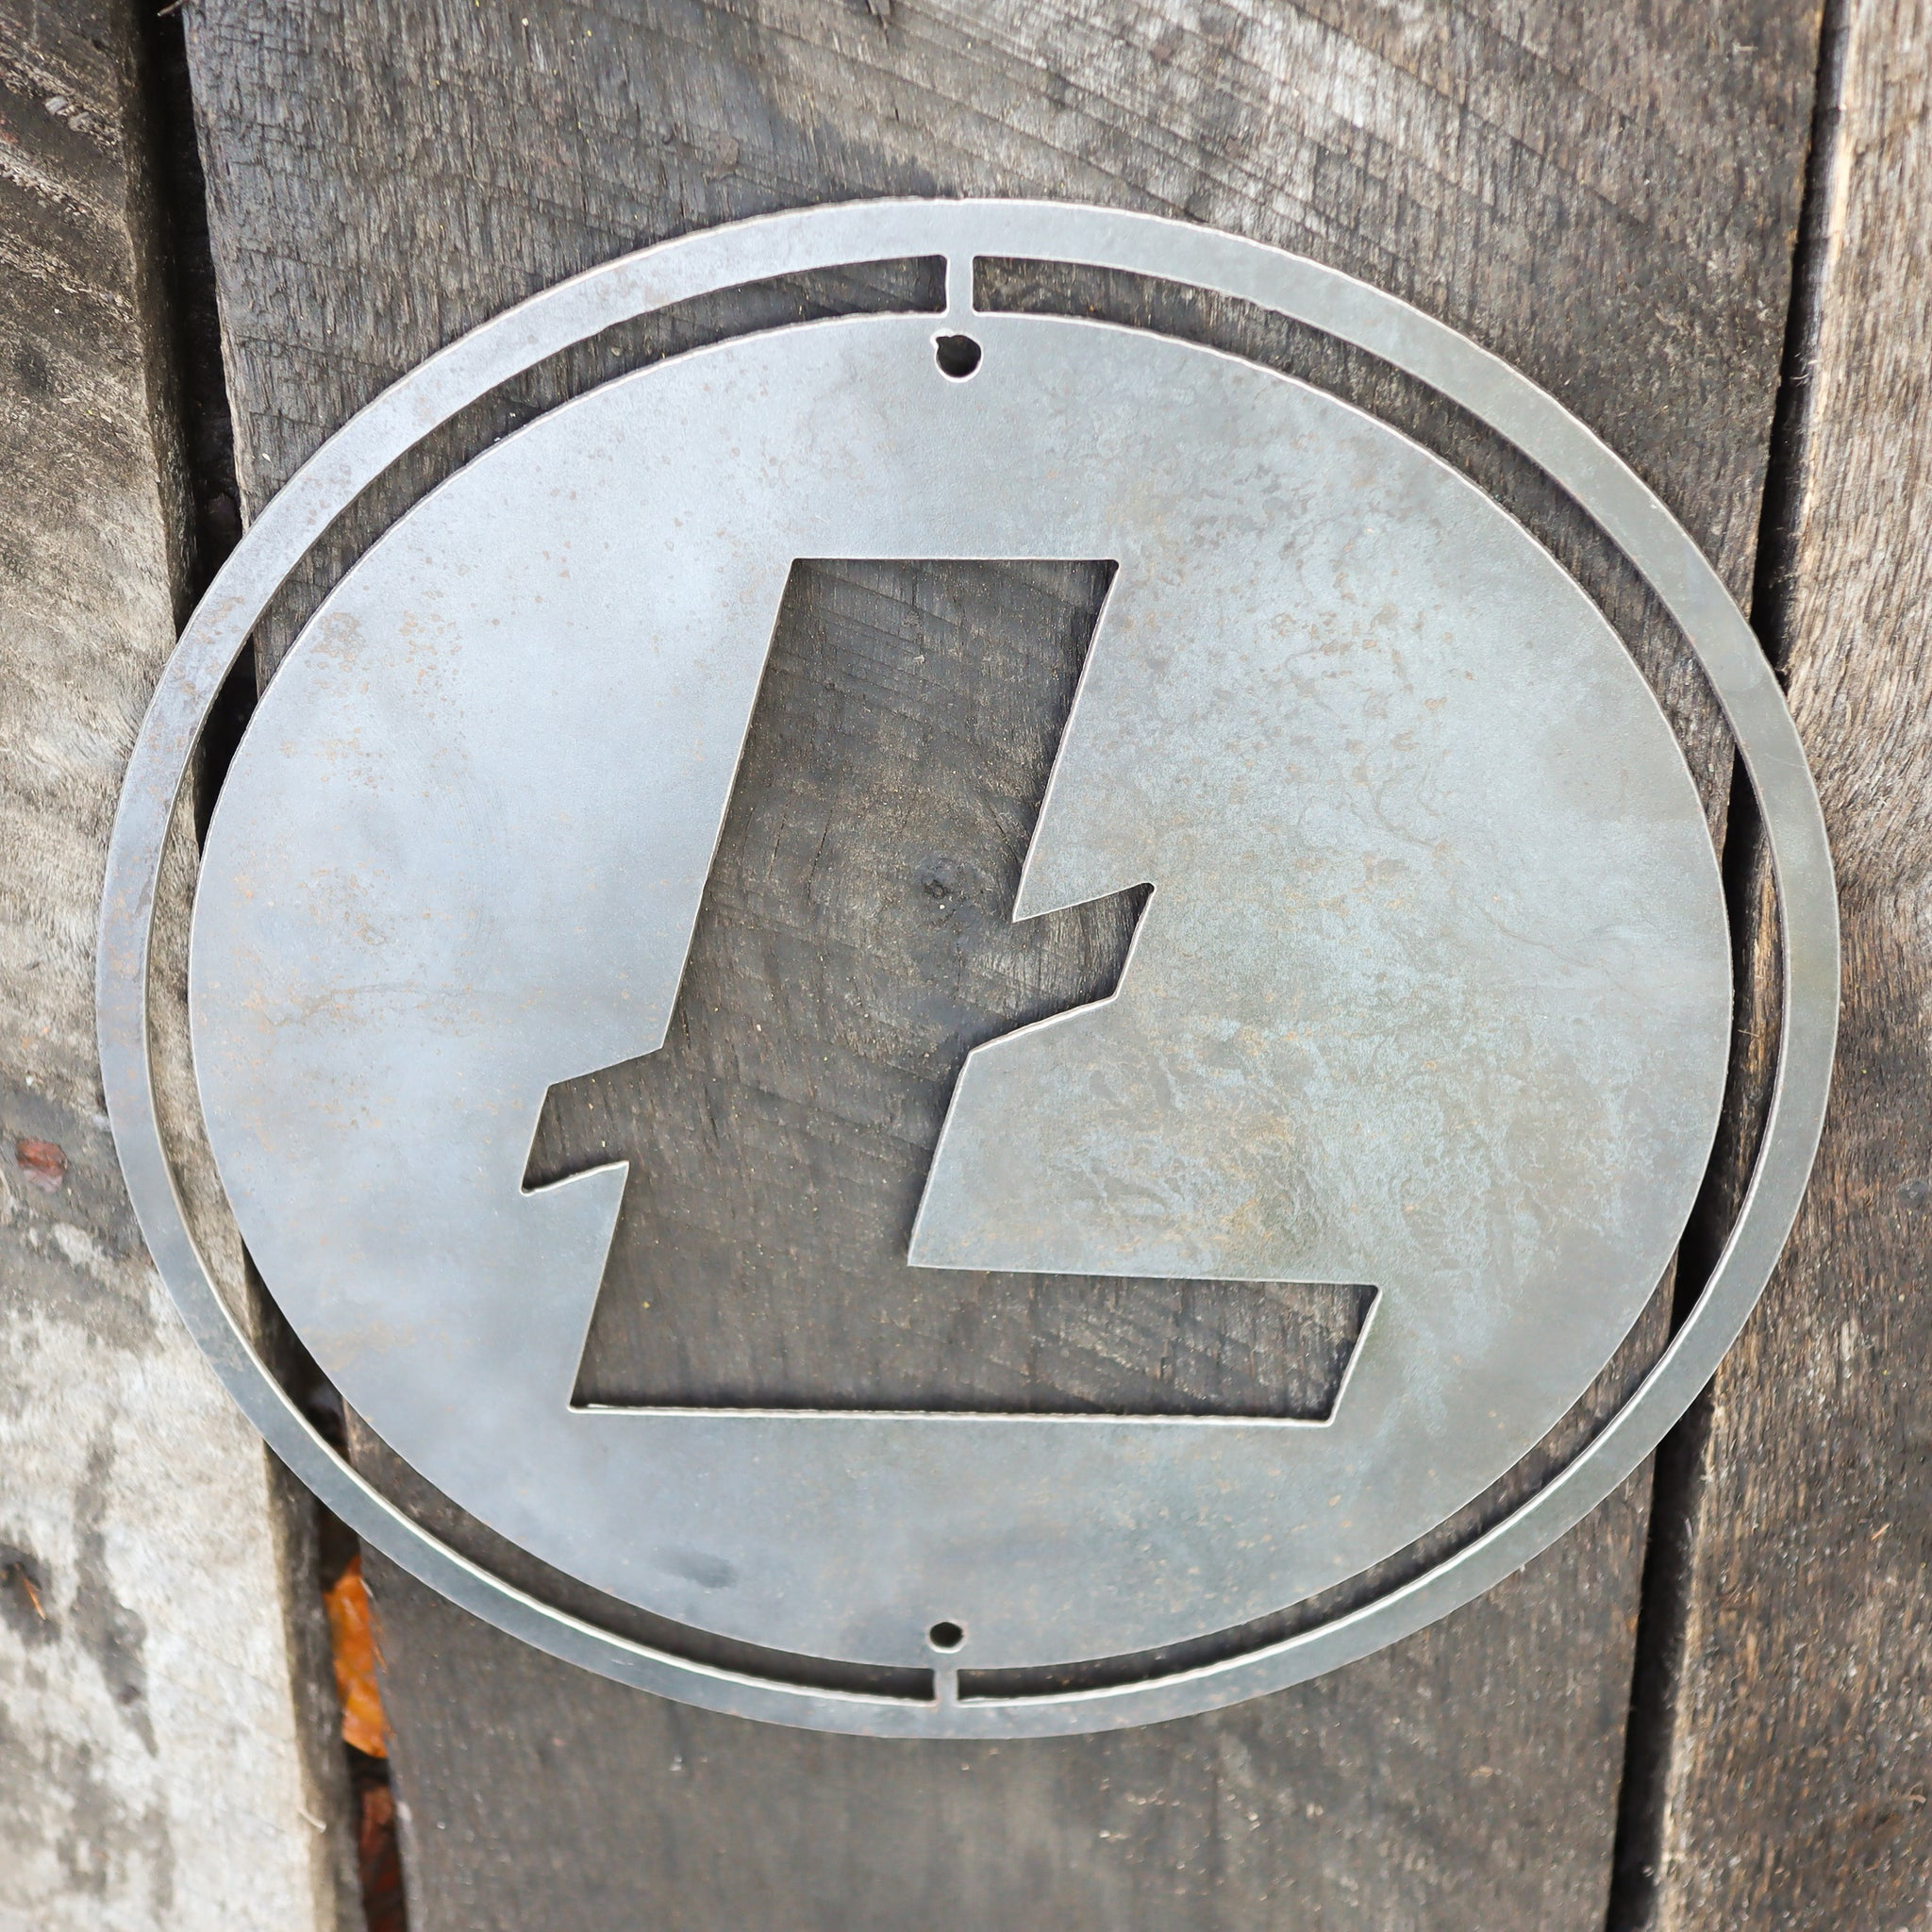 Metal Litecoin Shop Sign - Steel Cryptocurrency Business Decor - Custom Size Crypto Bitcoin Altcoin